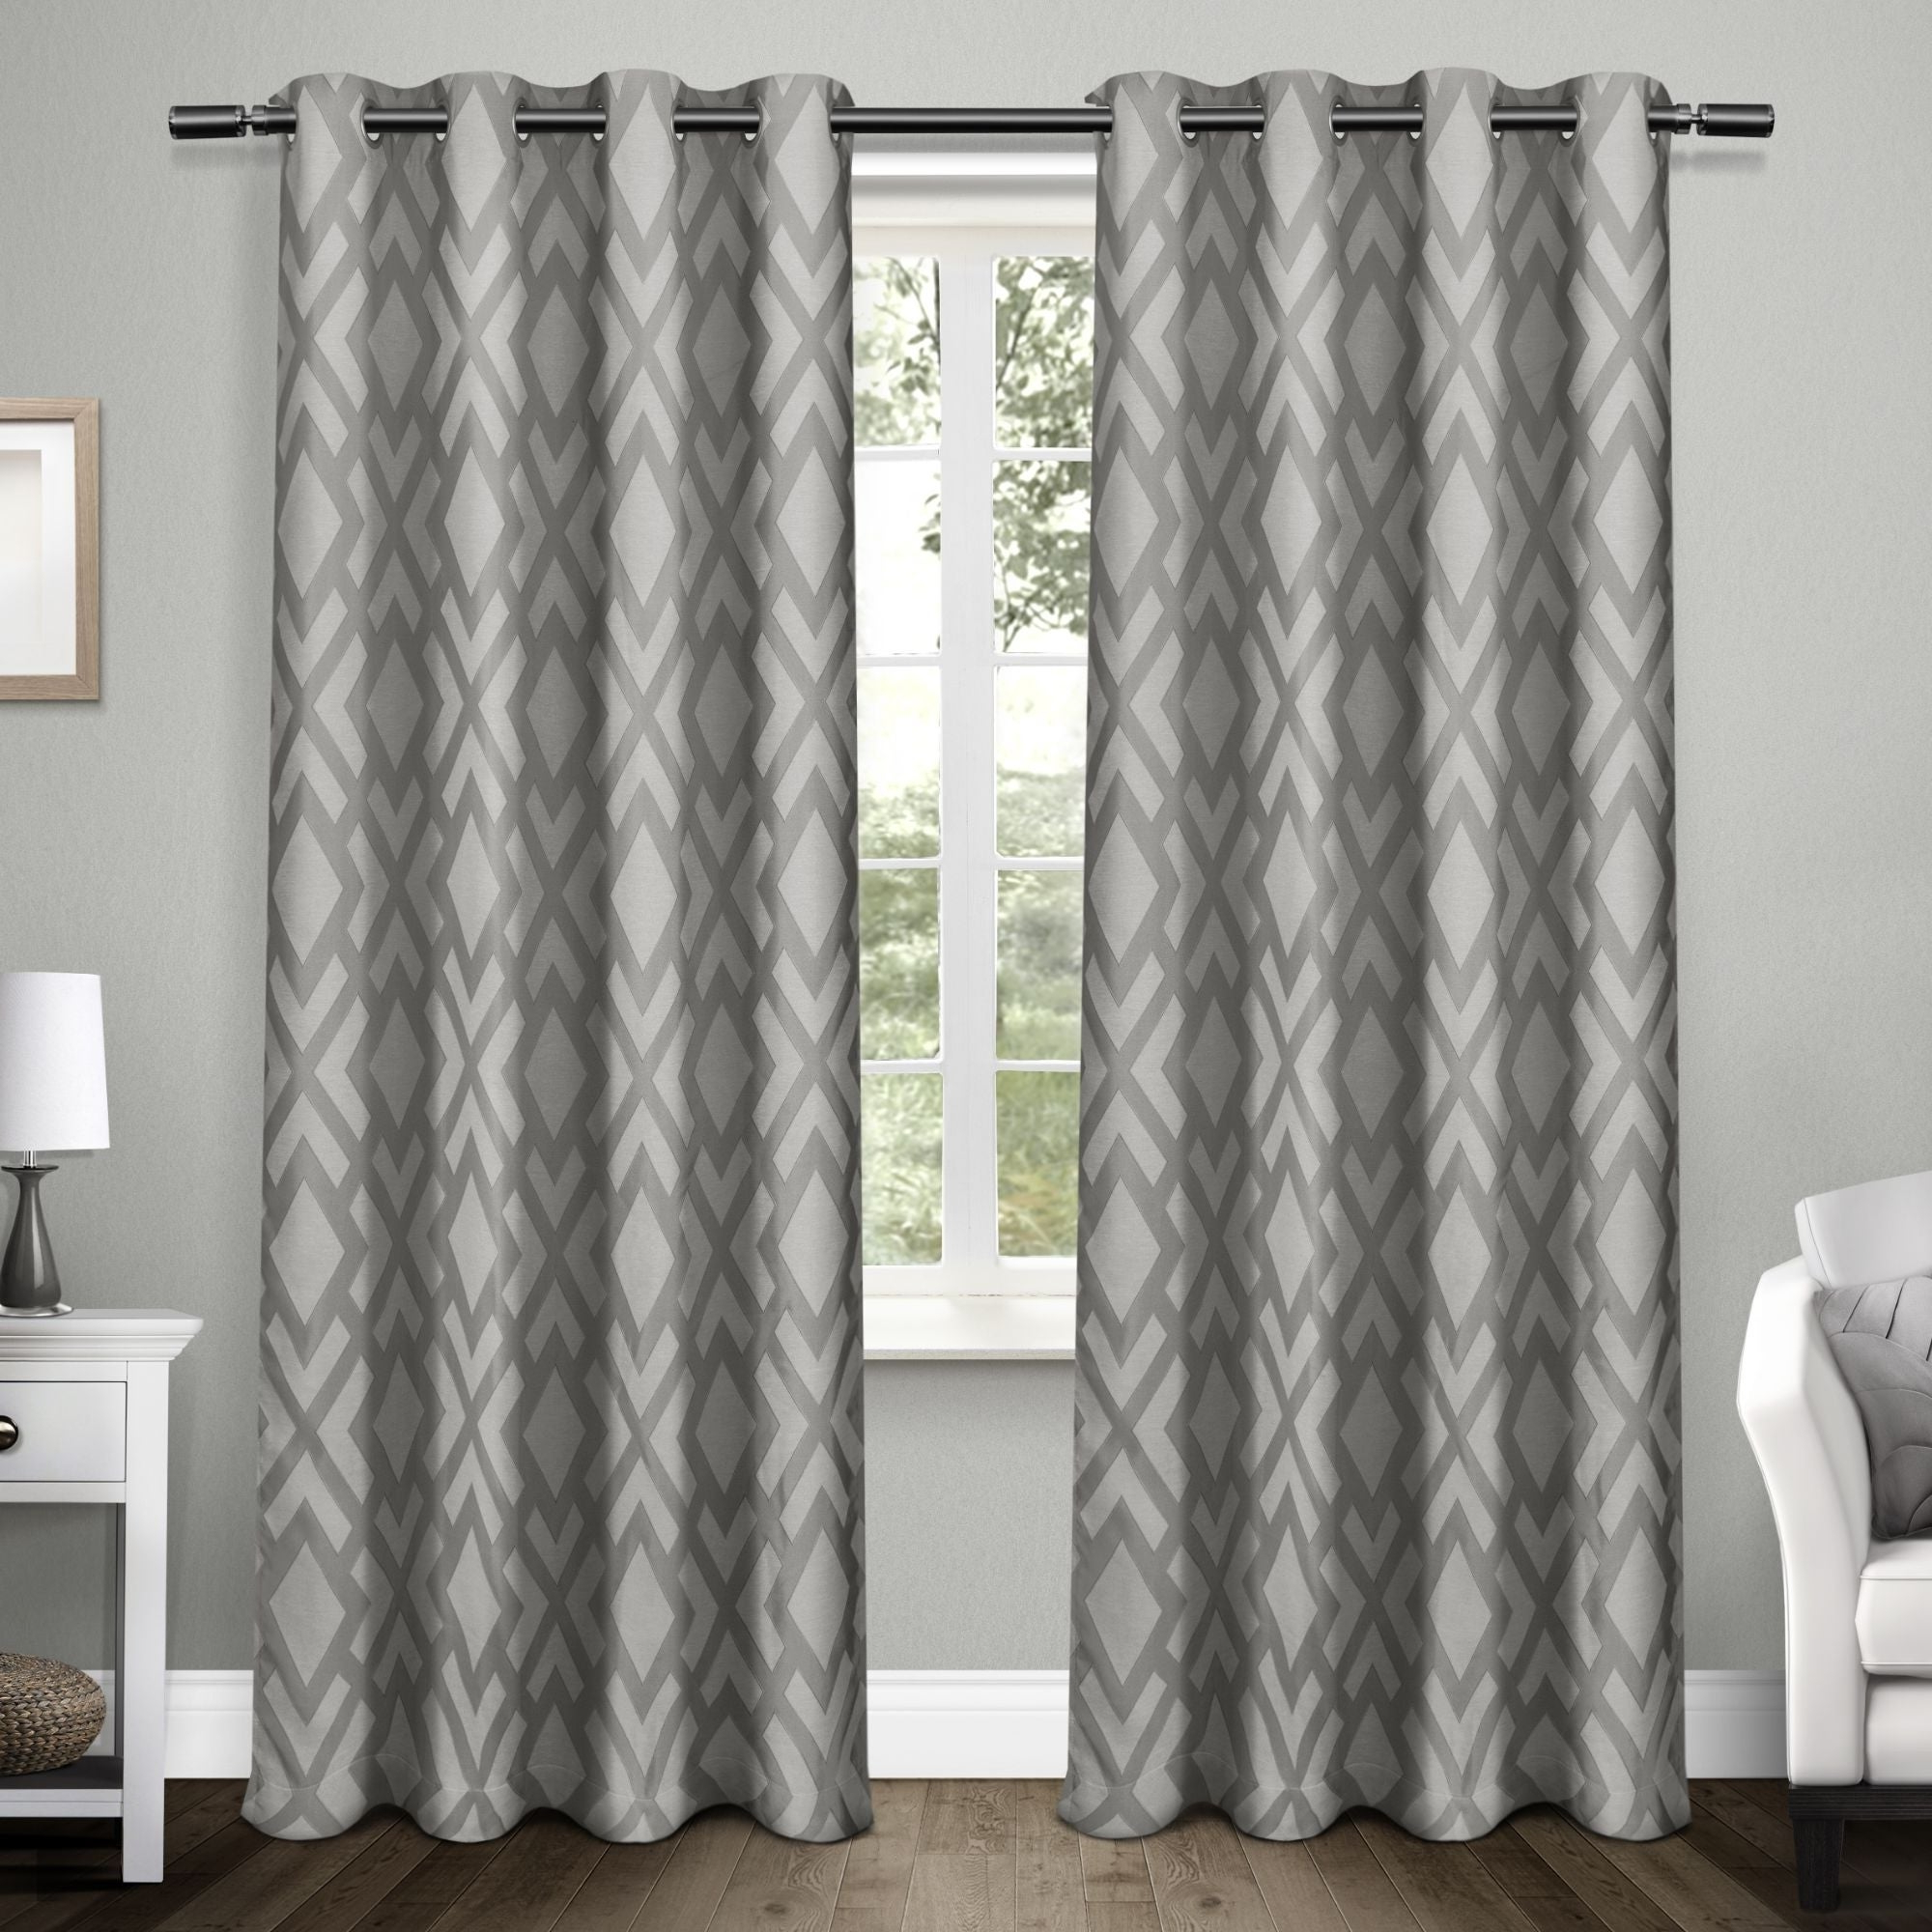 Ati Home Easton Thermal Woven Blackout Grommet Top Curtain Panel Pair Intended For Famous Thermal Woven Blackout Grommet Top Curtain Panel Pairs (View 14 of 20)